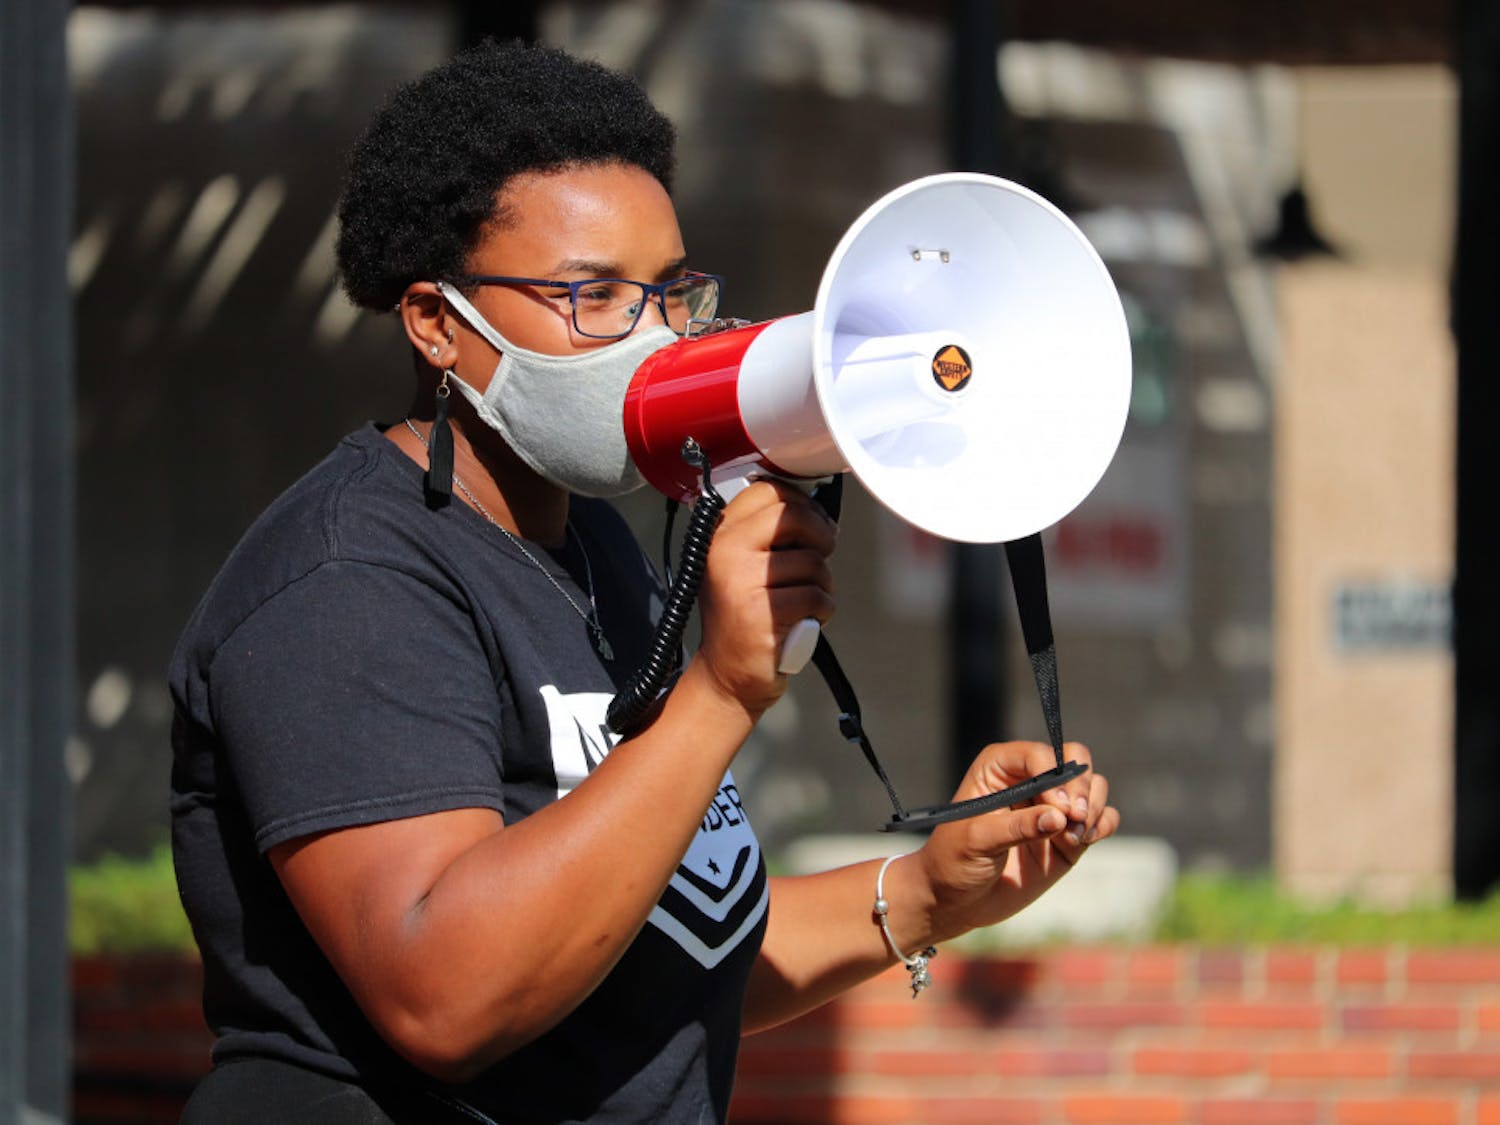 Kiara Laurent speaks to the crowd at Bo Diddley Plaza in Gainesville before protesters march to the Alachua County Courthouse on Saturday, Sept. 26, 2020. Laurent is a member of the Dream Defenders, a black-led organization of young people who planned this event. (Lauren Witte/Alligator Staff)